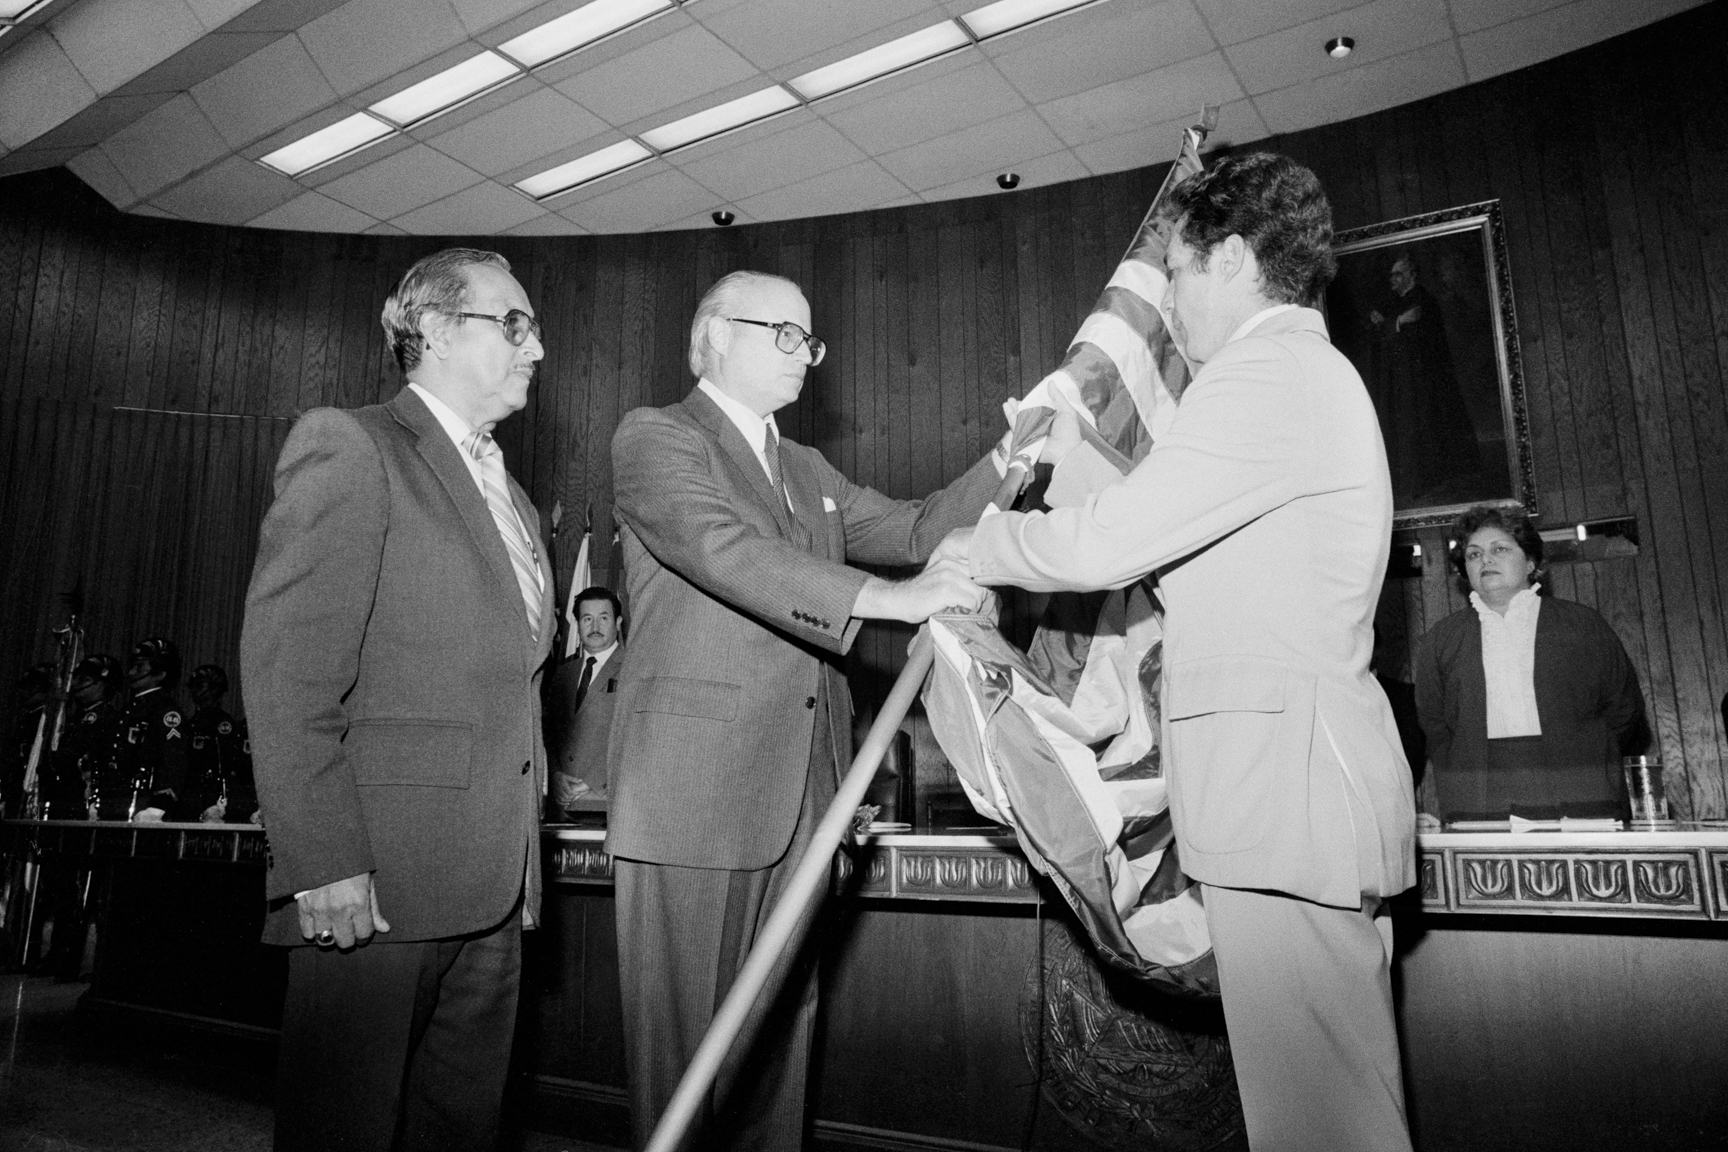 U.S. Ambassador Deane Hinton, center, hands an American flag to President of the Constituent Assembly Roberto D'Aubuisson April 1984. At the time, D'Aubuisson was the first leader of the Nationalist Republican Alliance (ARENA) and had been named as the primary suspect who ordered the assassination of Archbishop Óscar Romero in 1980.